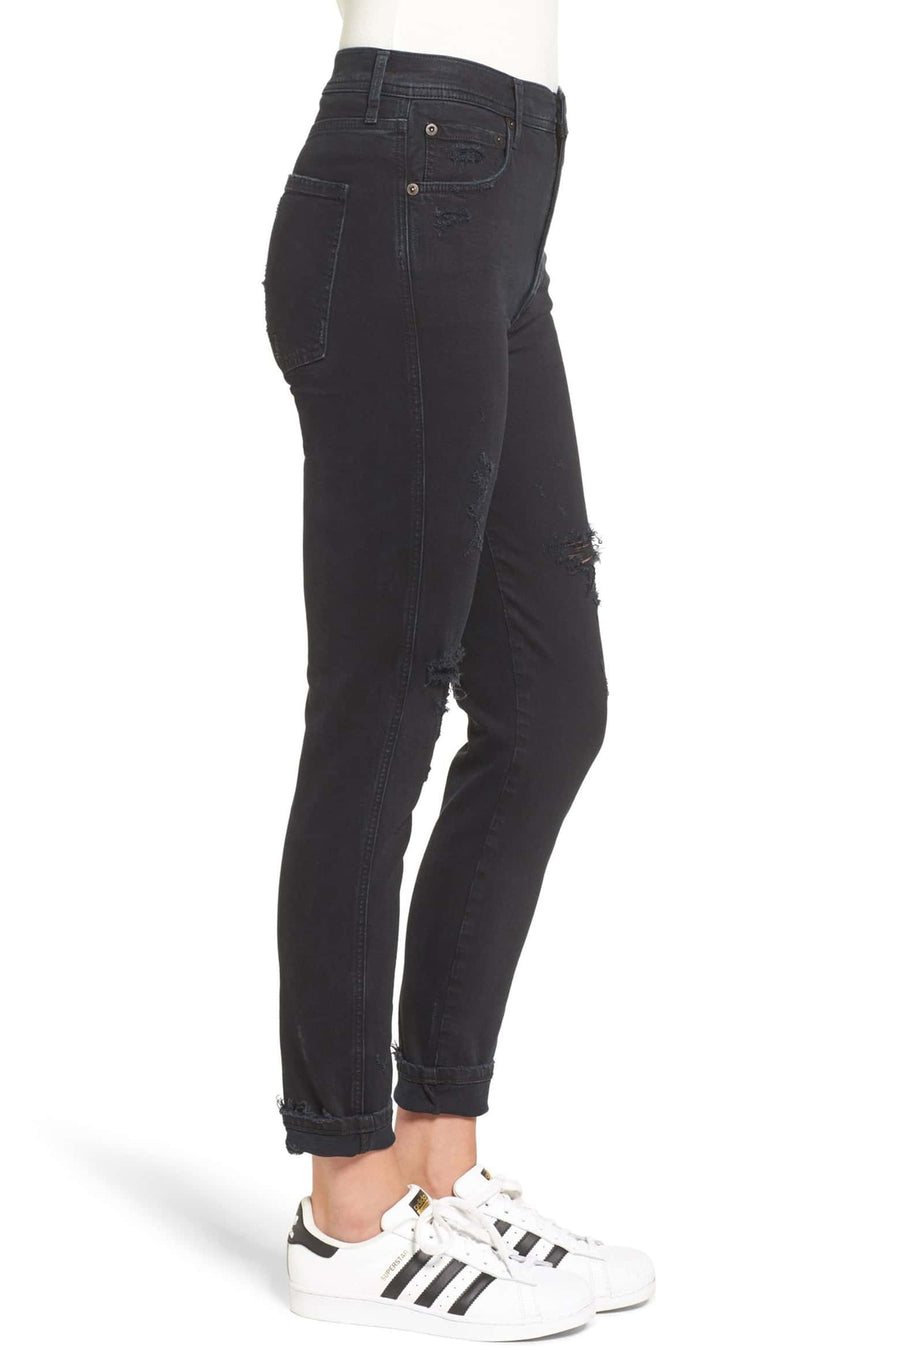 Roxanne Super High Rise Skinny - Princeton Destruct